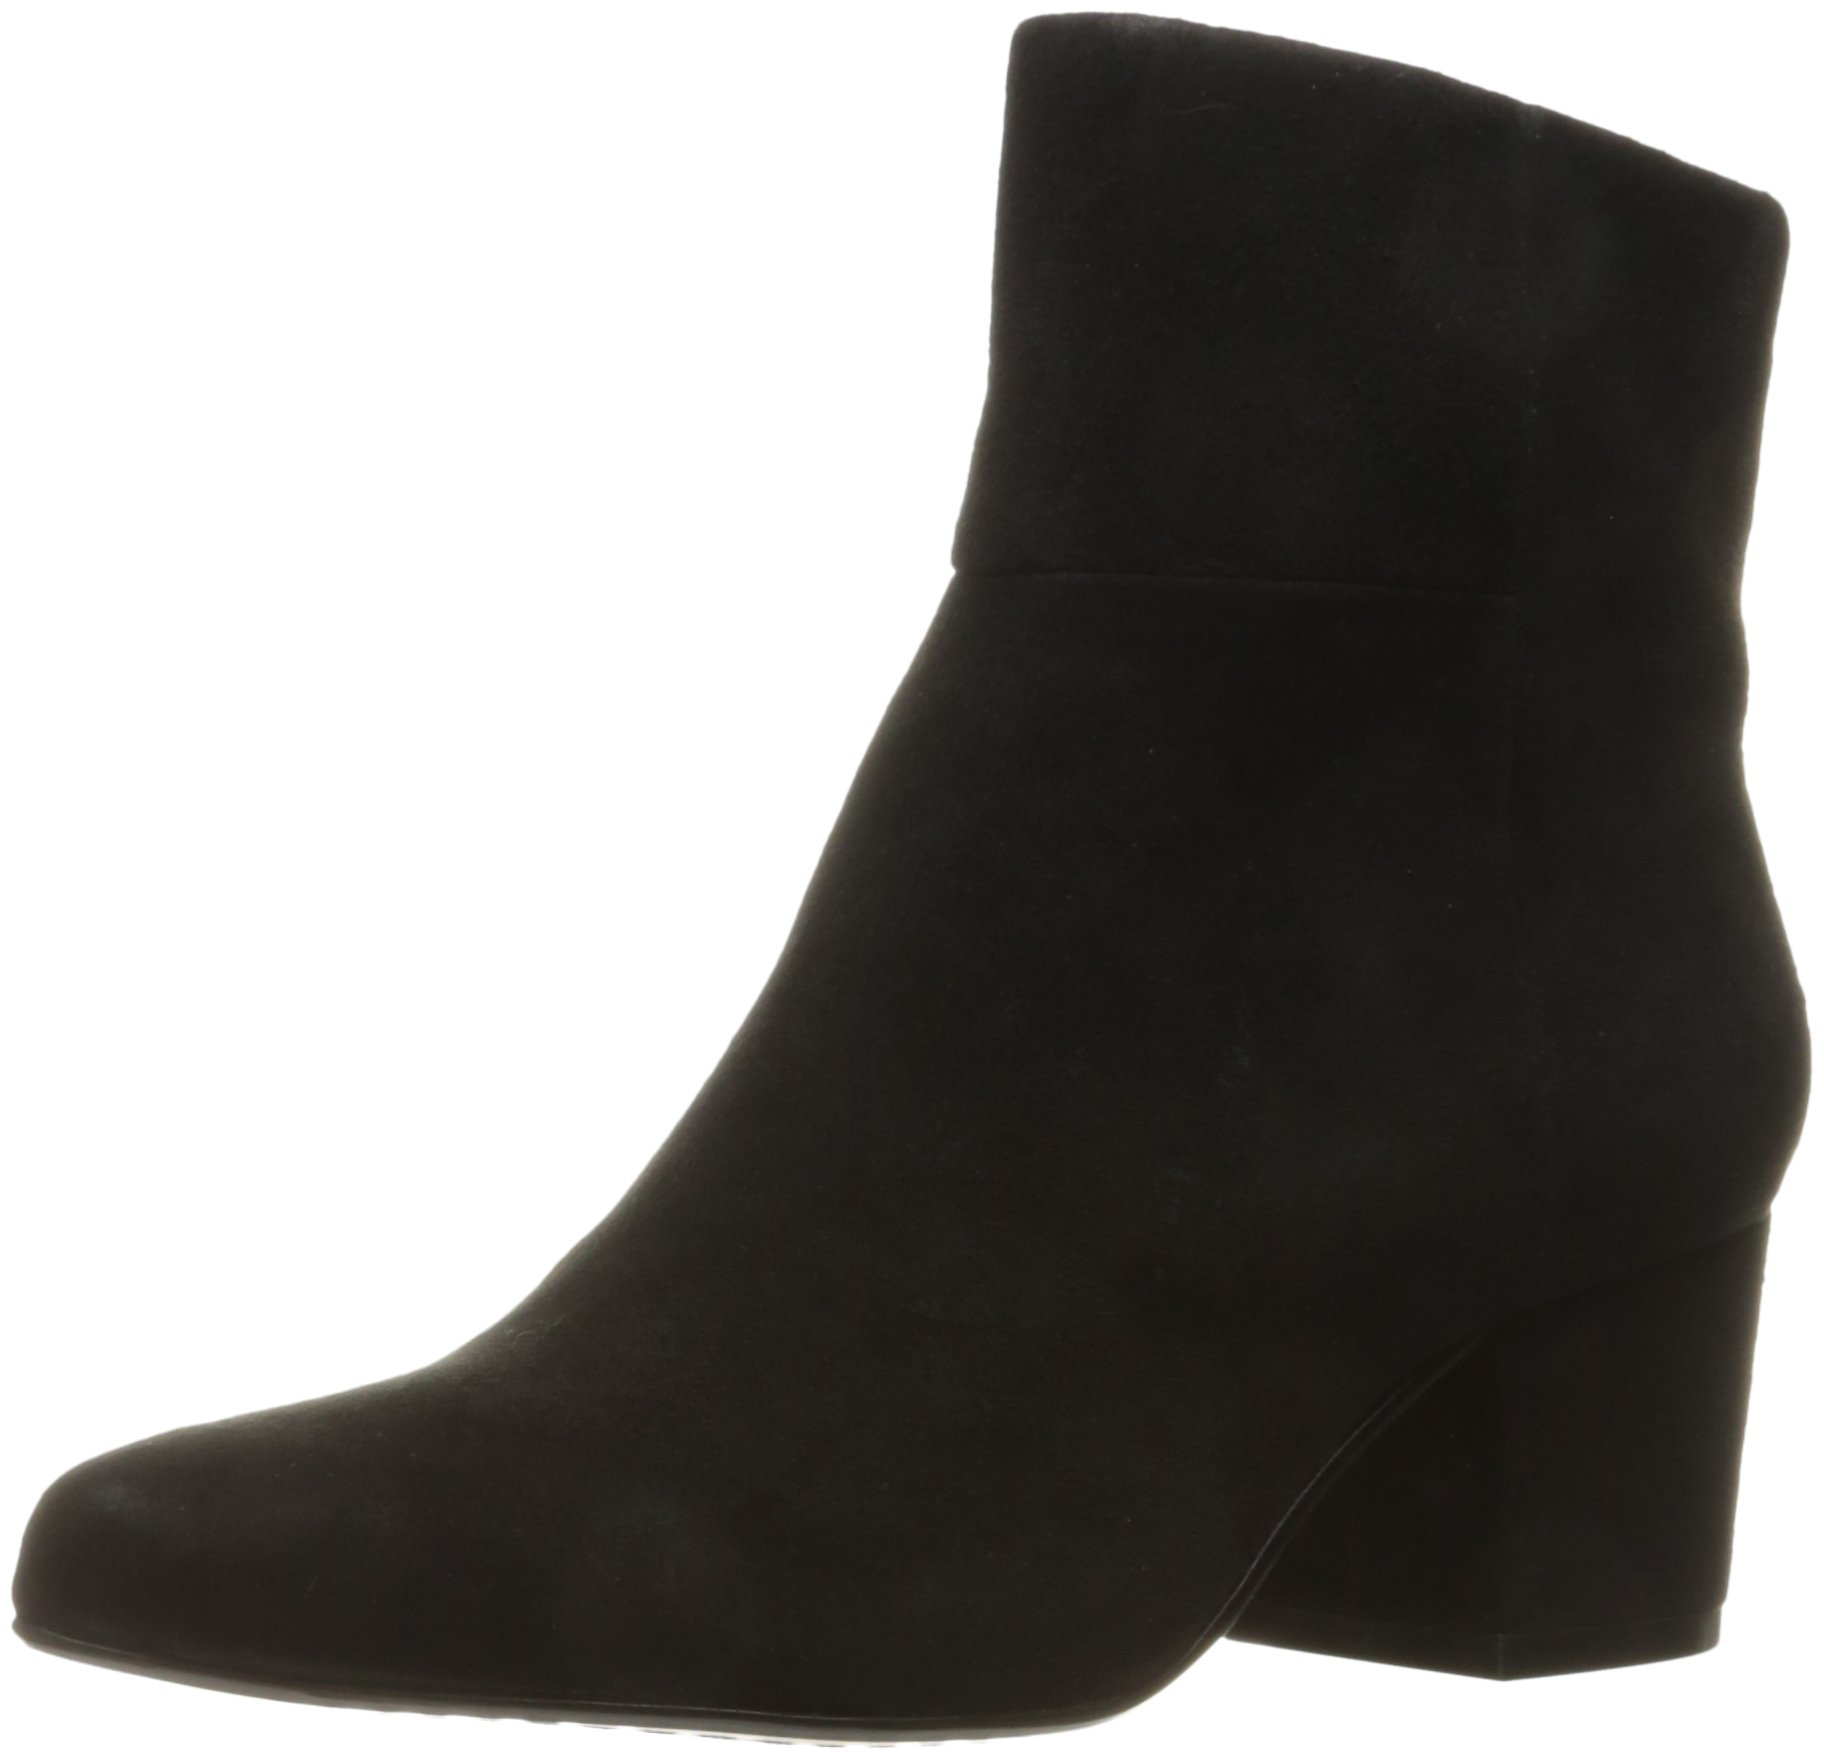 STEVEN by Steve Madden Women's Wes Ankle Bootie, Black Suede, 7.5 M US